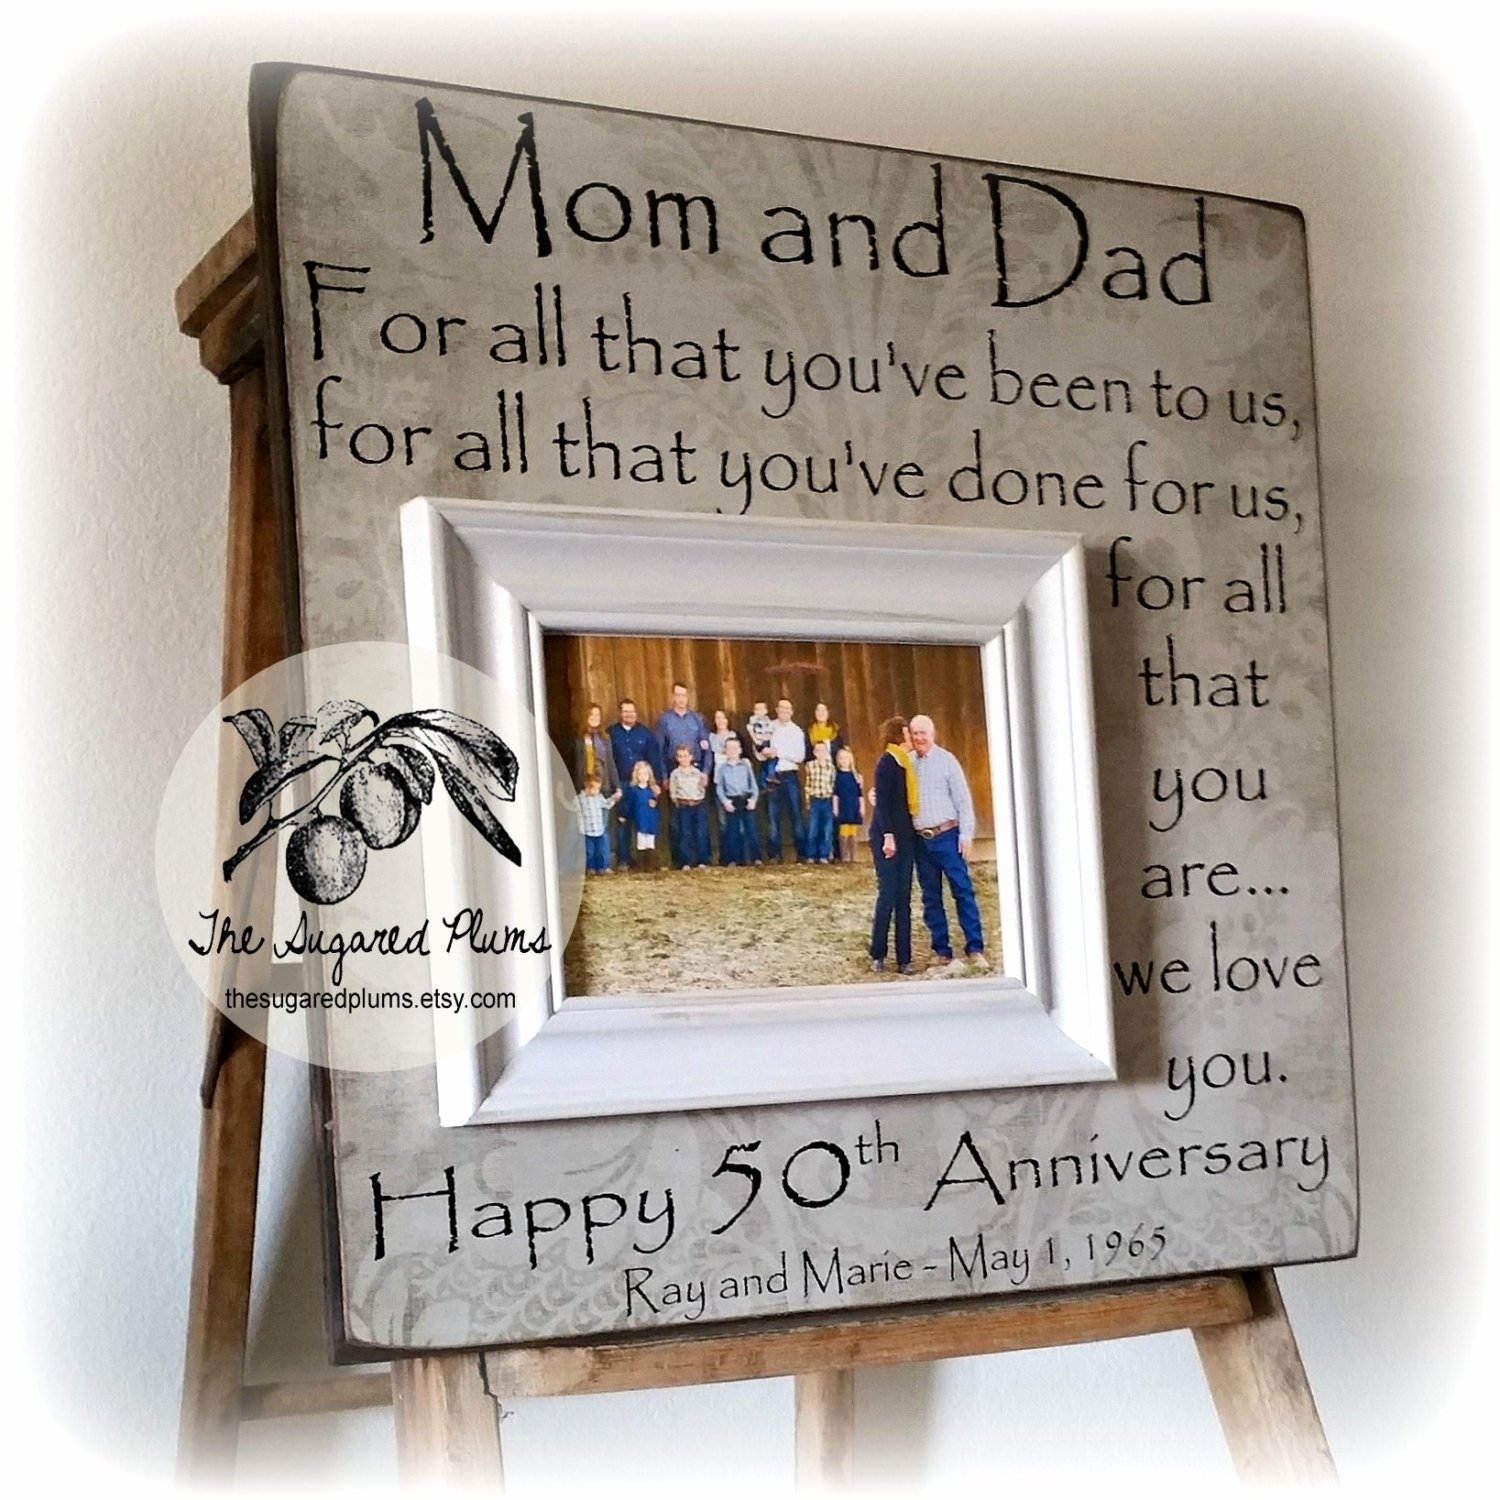 10 Great Parents 25Th Anniversary Gift Ideas 25th wedding anniversary gift ideas for couples new 50th anniversary 6 2020